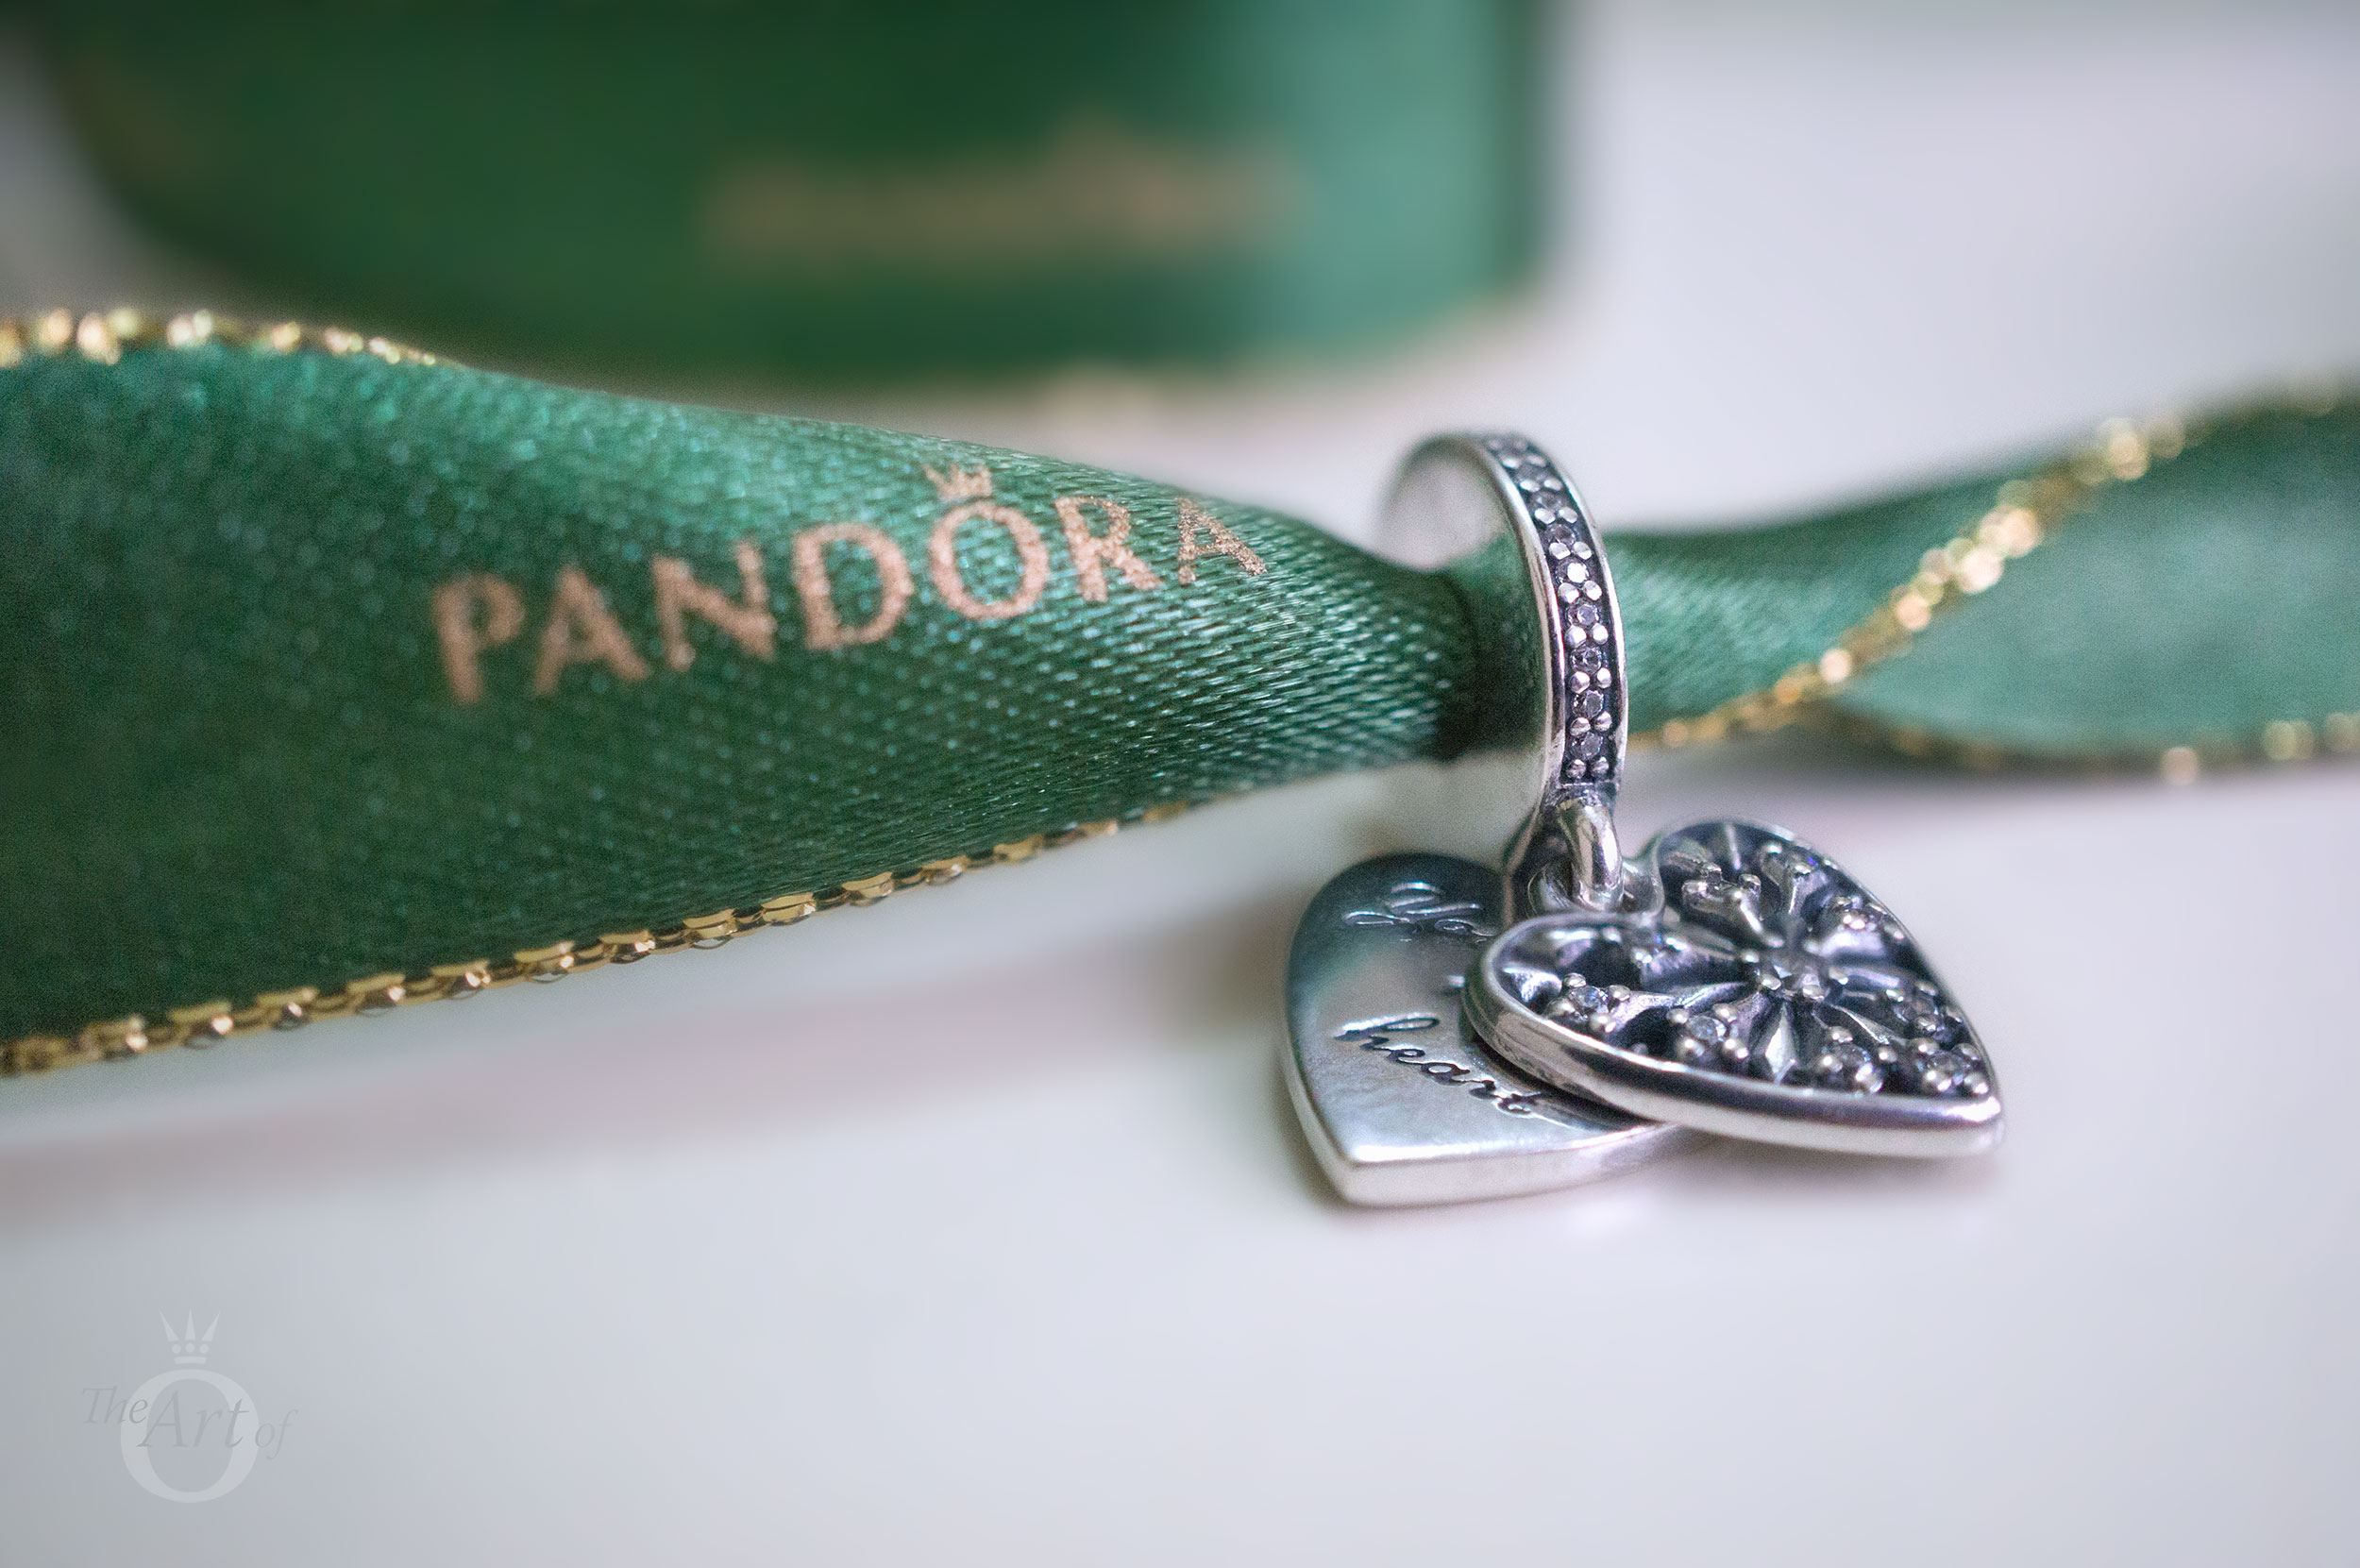 Review: Pandora Heart Of Winter Pendant Charm – The Art Of Pandora Inside Most Recently Released Pandora Moments Small O Pendant Necklaces (View 23 of 25)